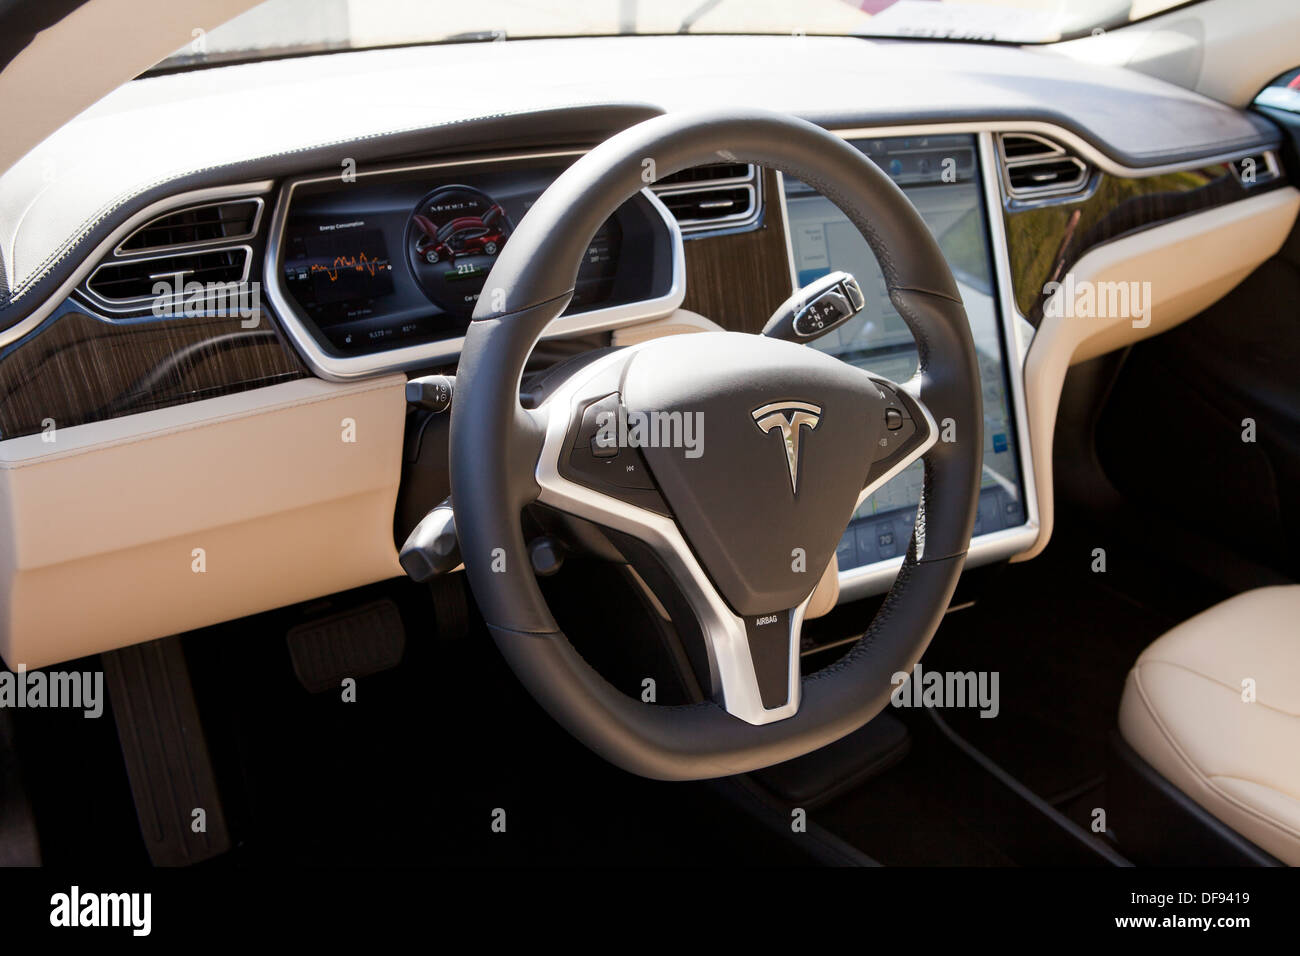 tesla model s electric car interior stock photo 61051685 alamy. Black Bedroom Furniture Sets. Home Design Ideas